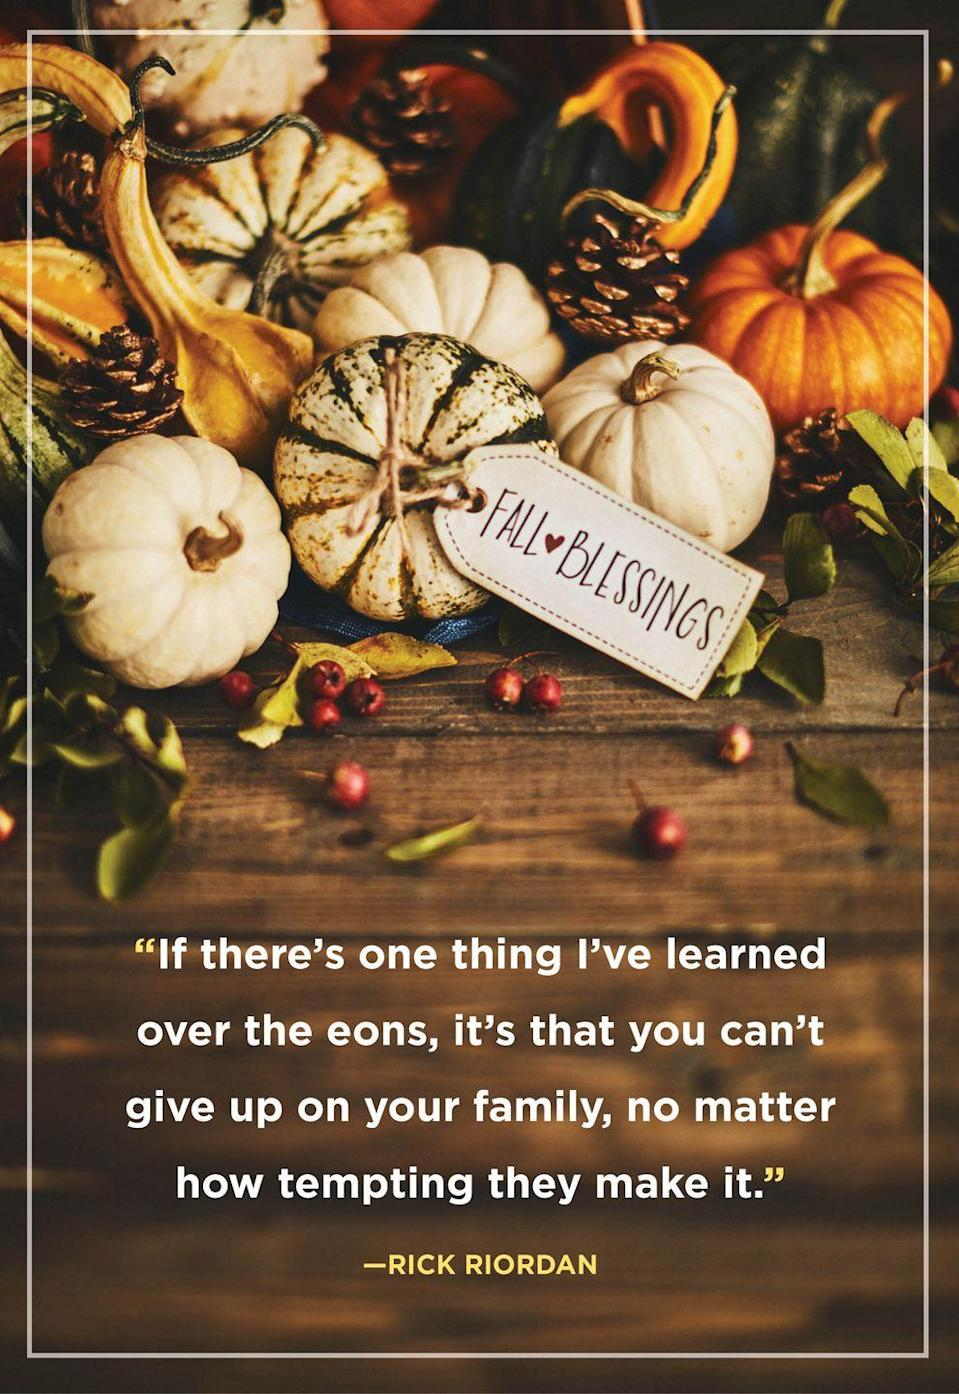 """<p>""""If there's one thing I've learned over the eons, it's that you can't give up on your family, no matter how tempting they make it.""""</p>"""